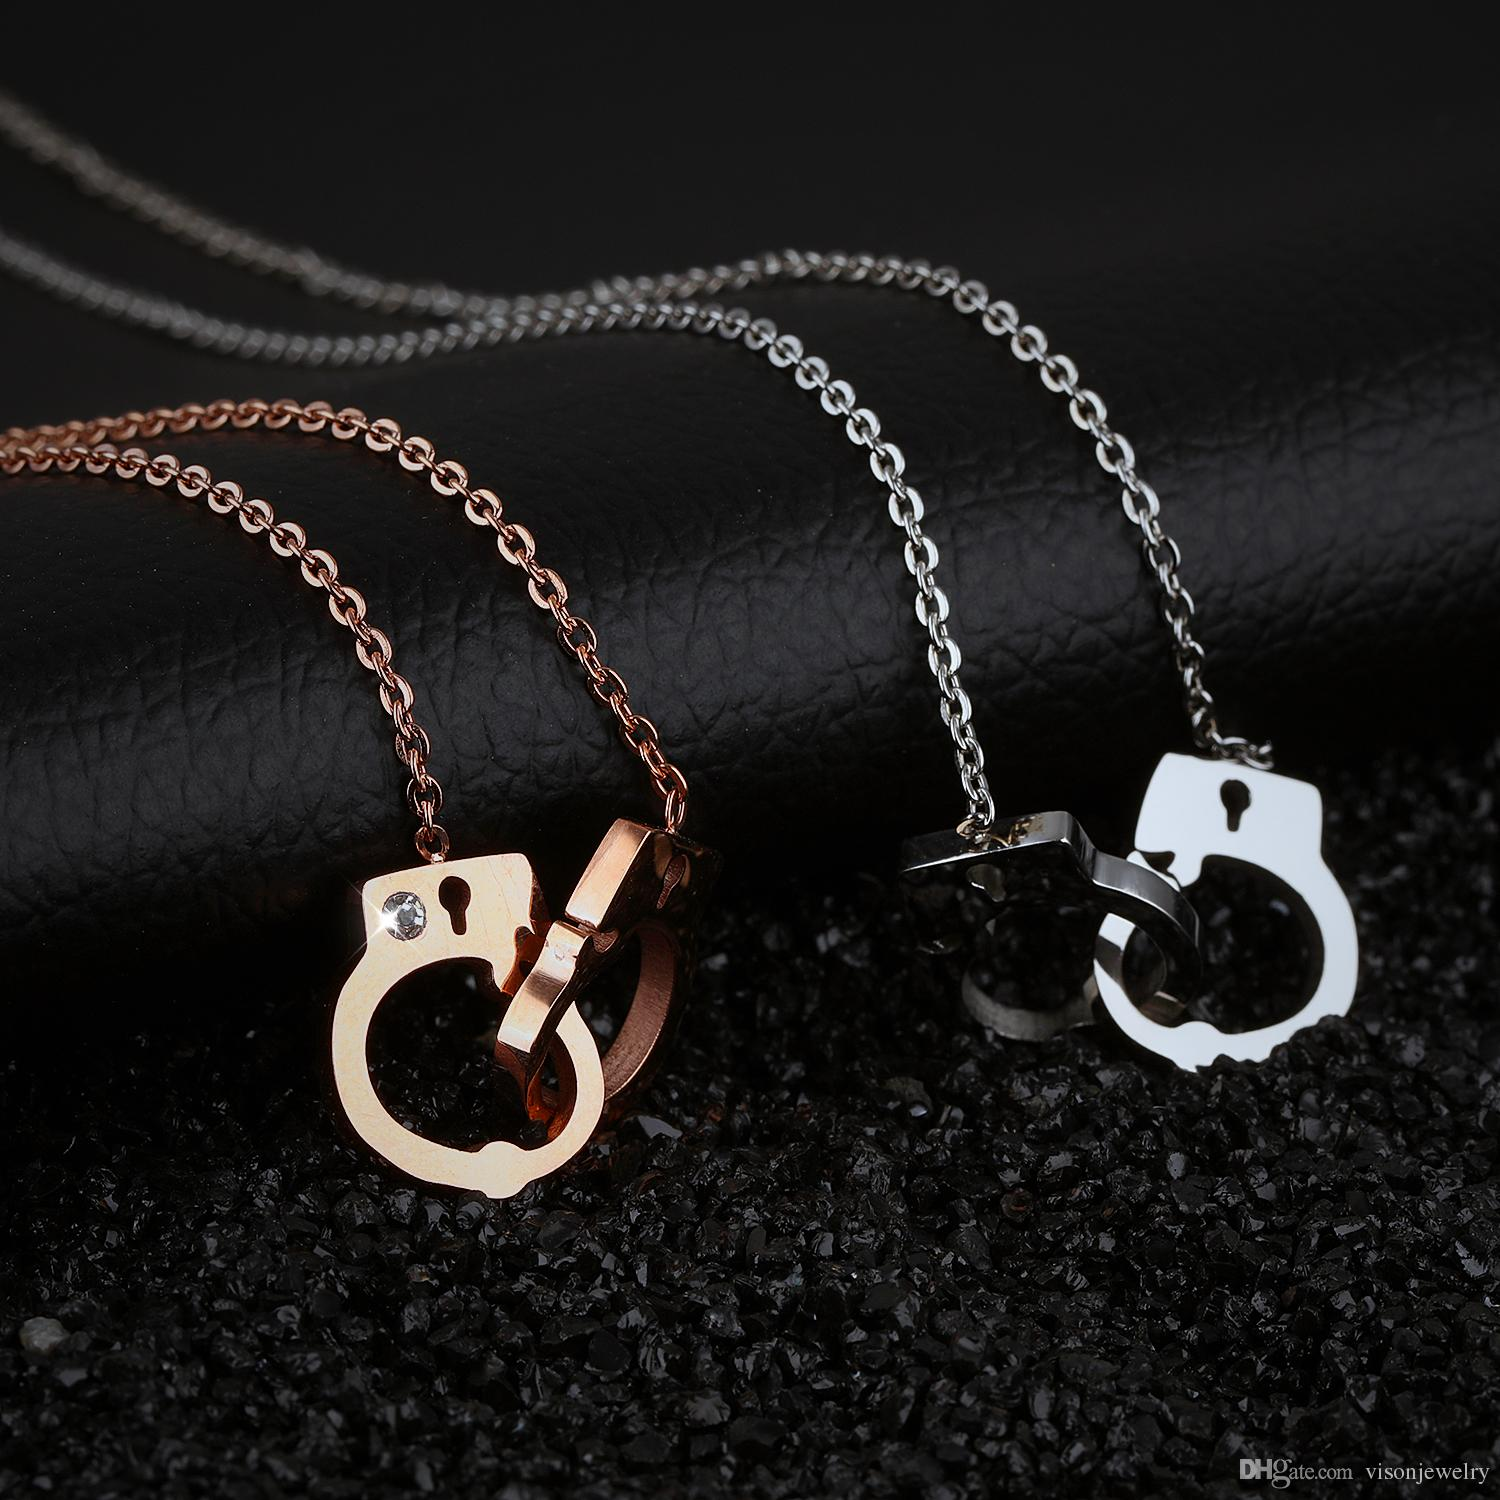 Crystal Lariat Handcuffs Choker Necklace in Stainless Steel - Silver, Rose Gold